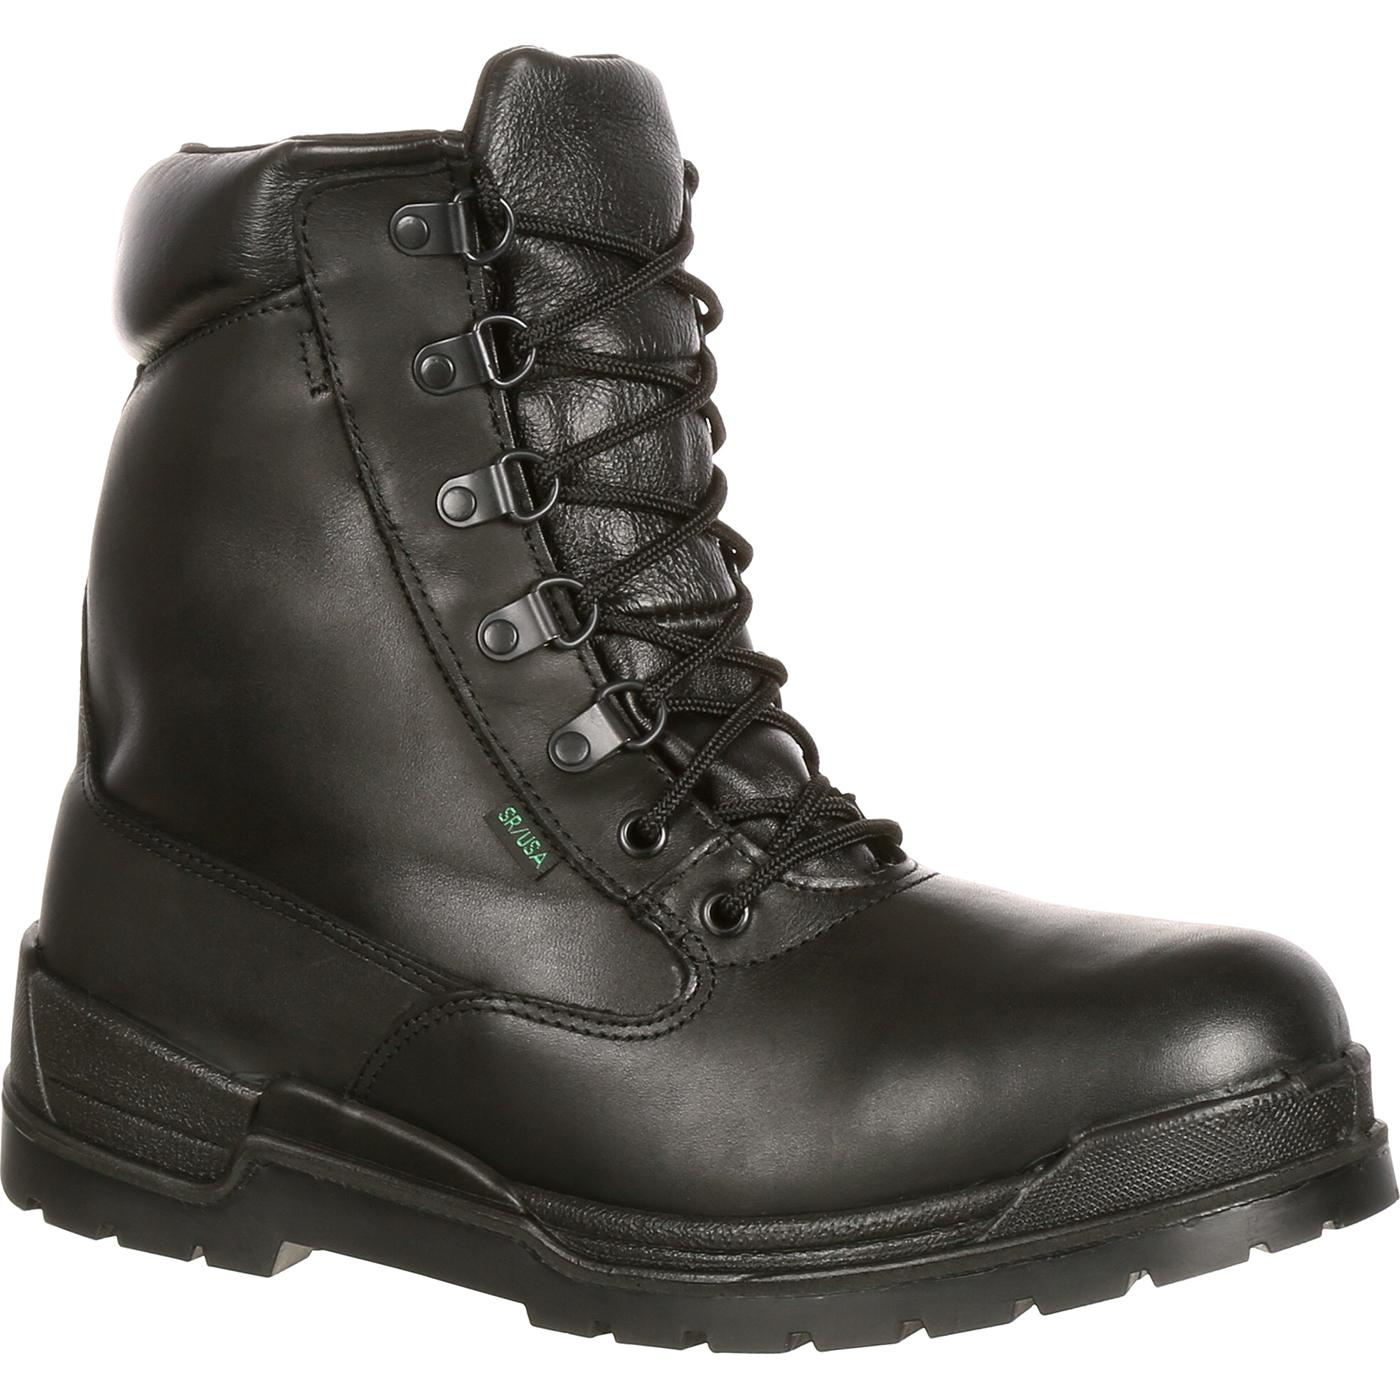 Rocky Eliminator Gore Tex Waterproof Insulated Duty Boot